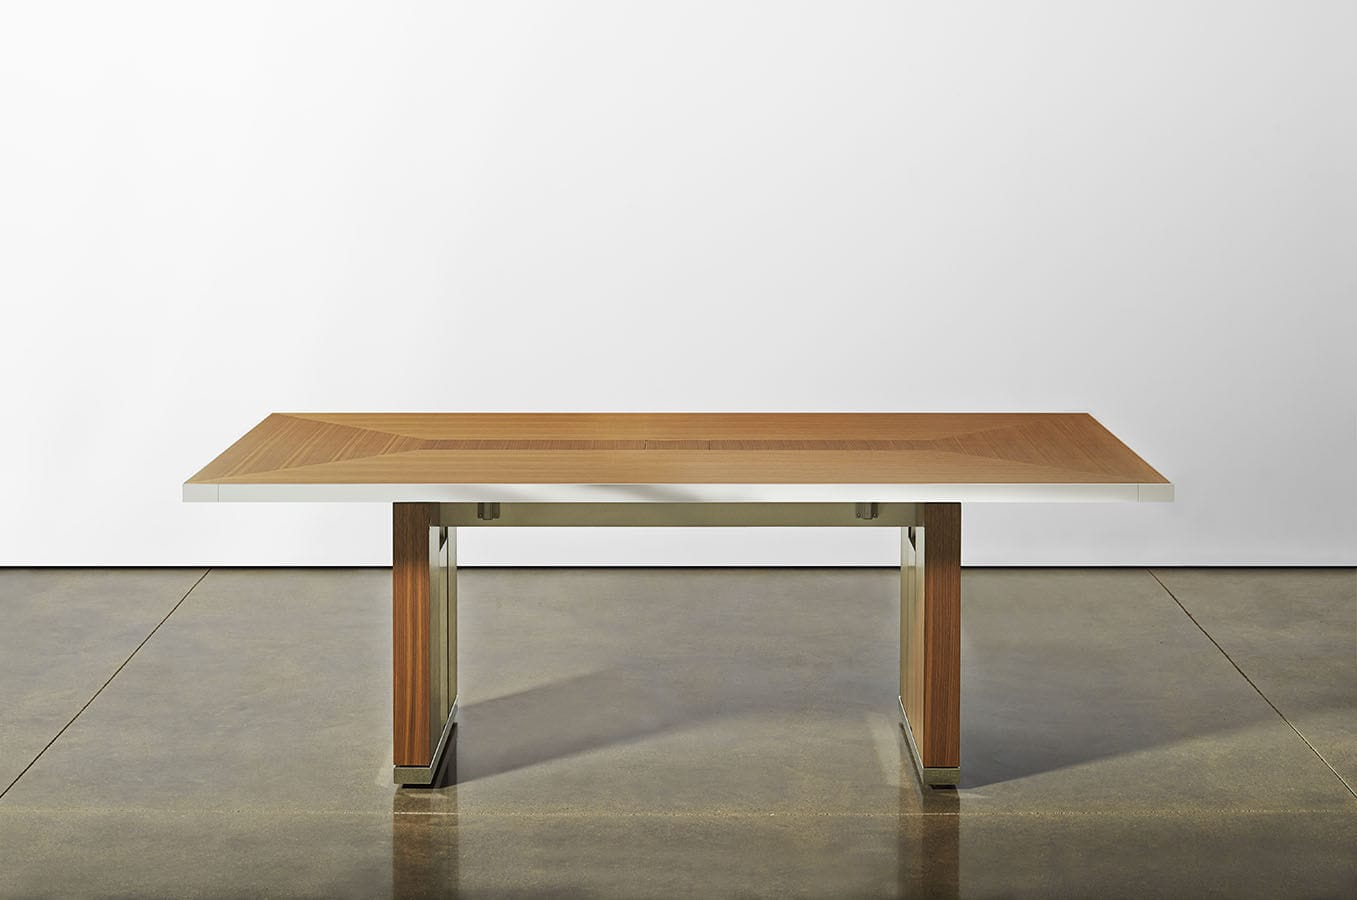 contemporary boardroom table wooden rectangular with integrated electrical outlet